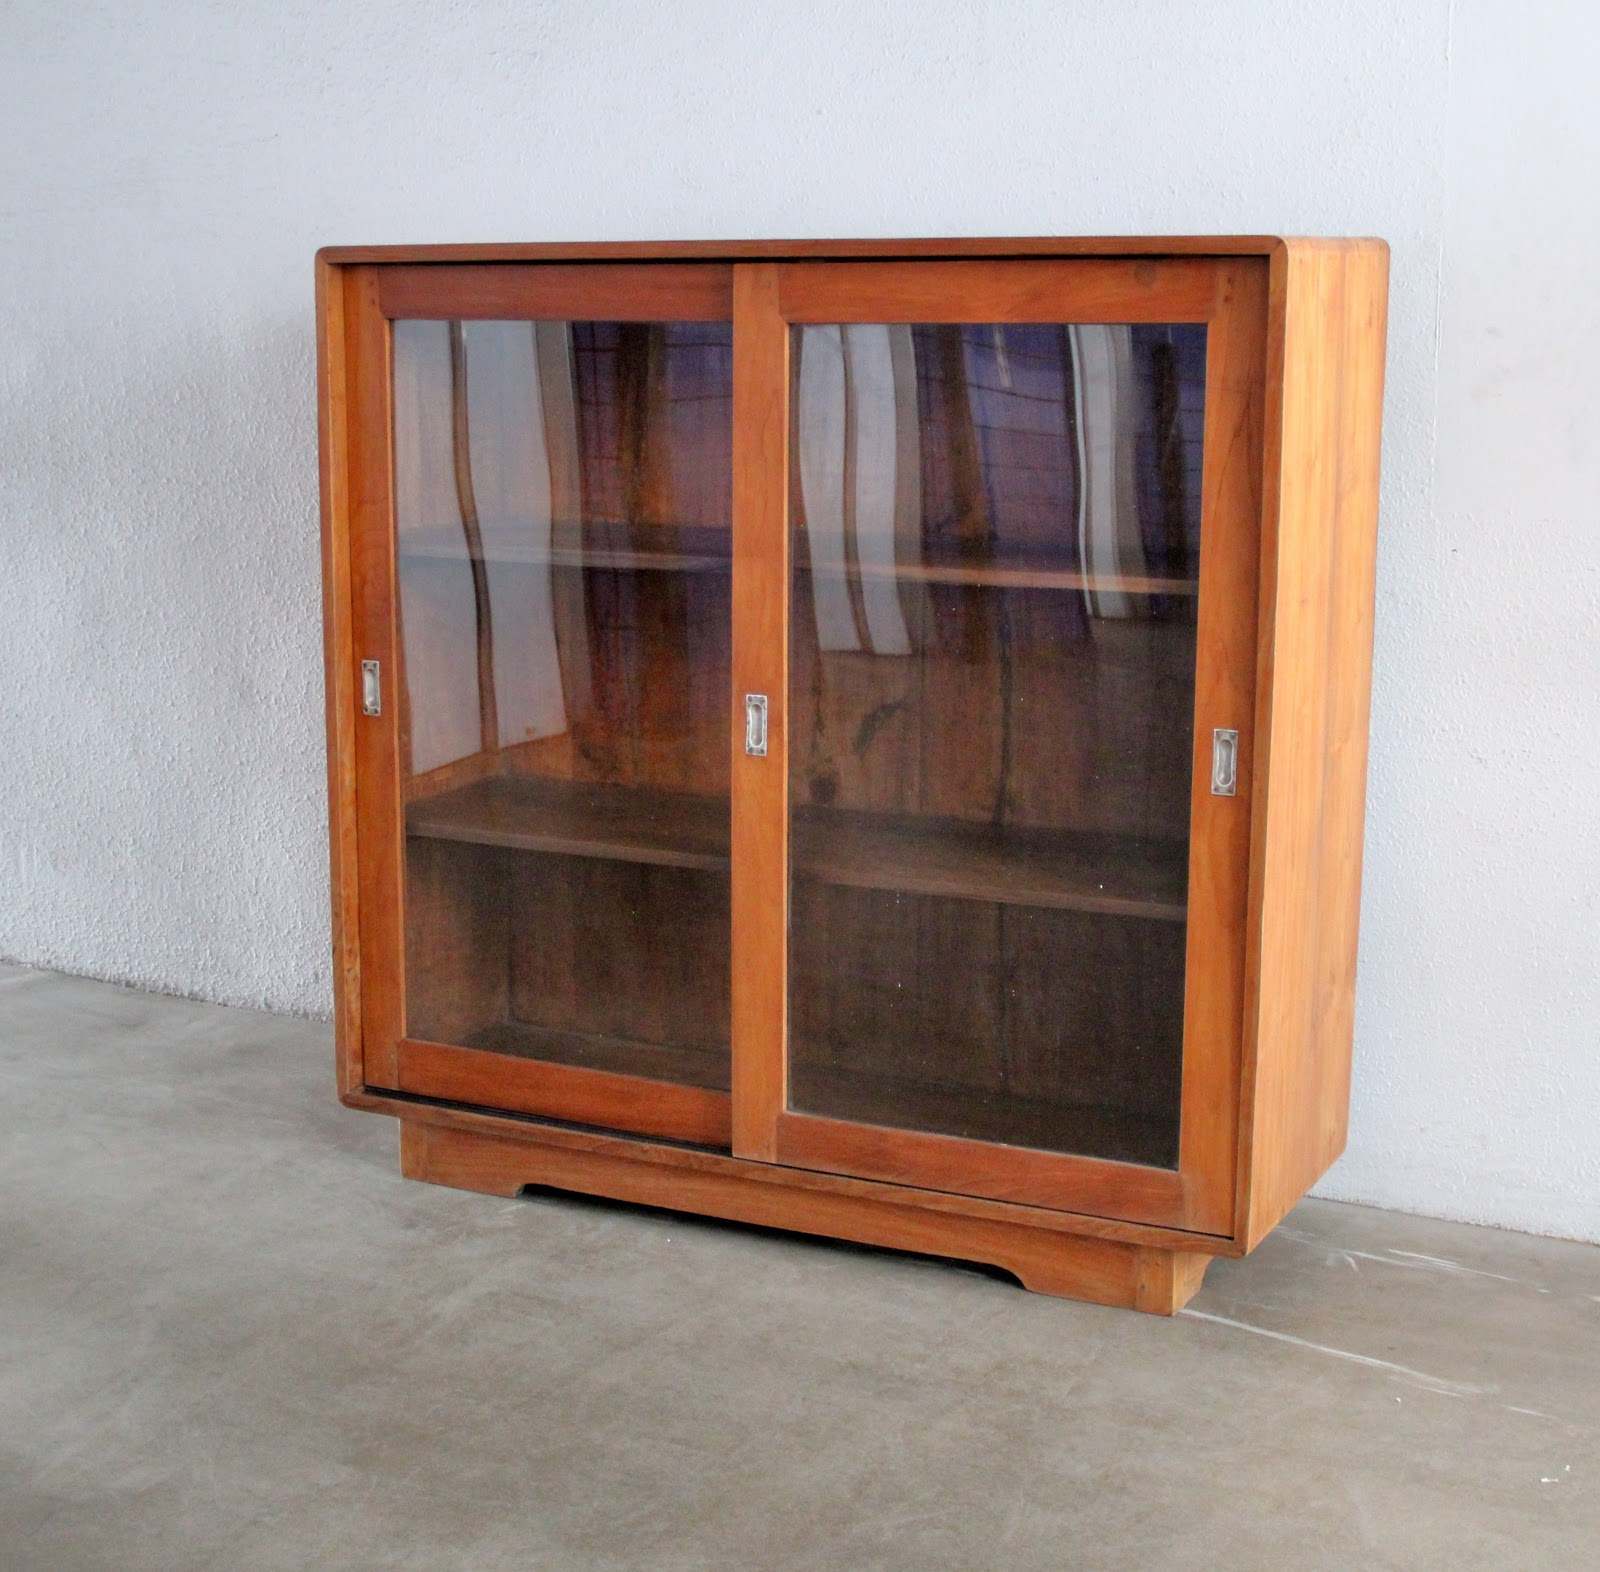 Vintage Sideboard Sliding Doors Vintage Showcases And Display Cabinets Second Charm